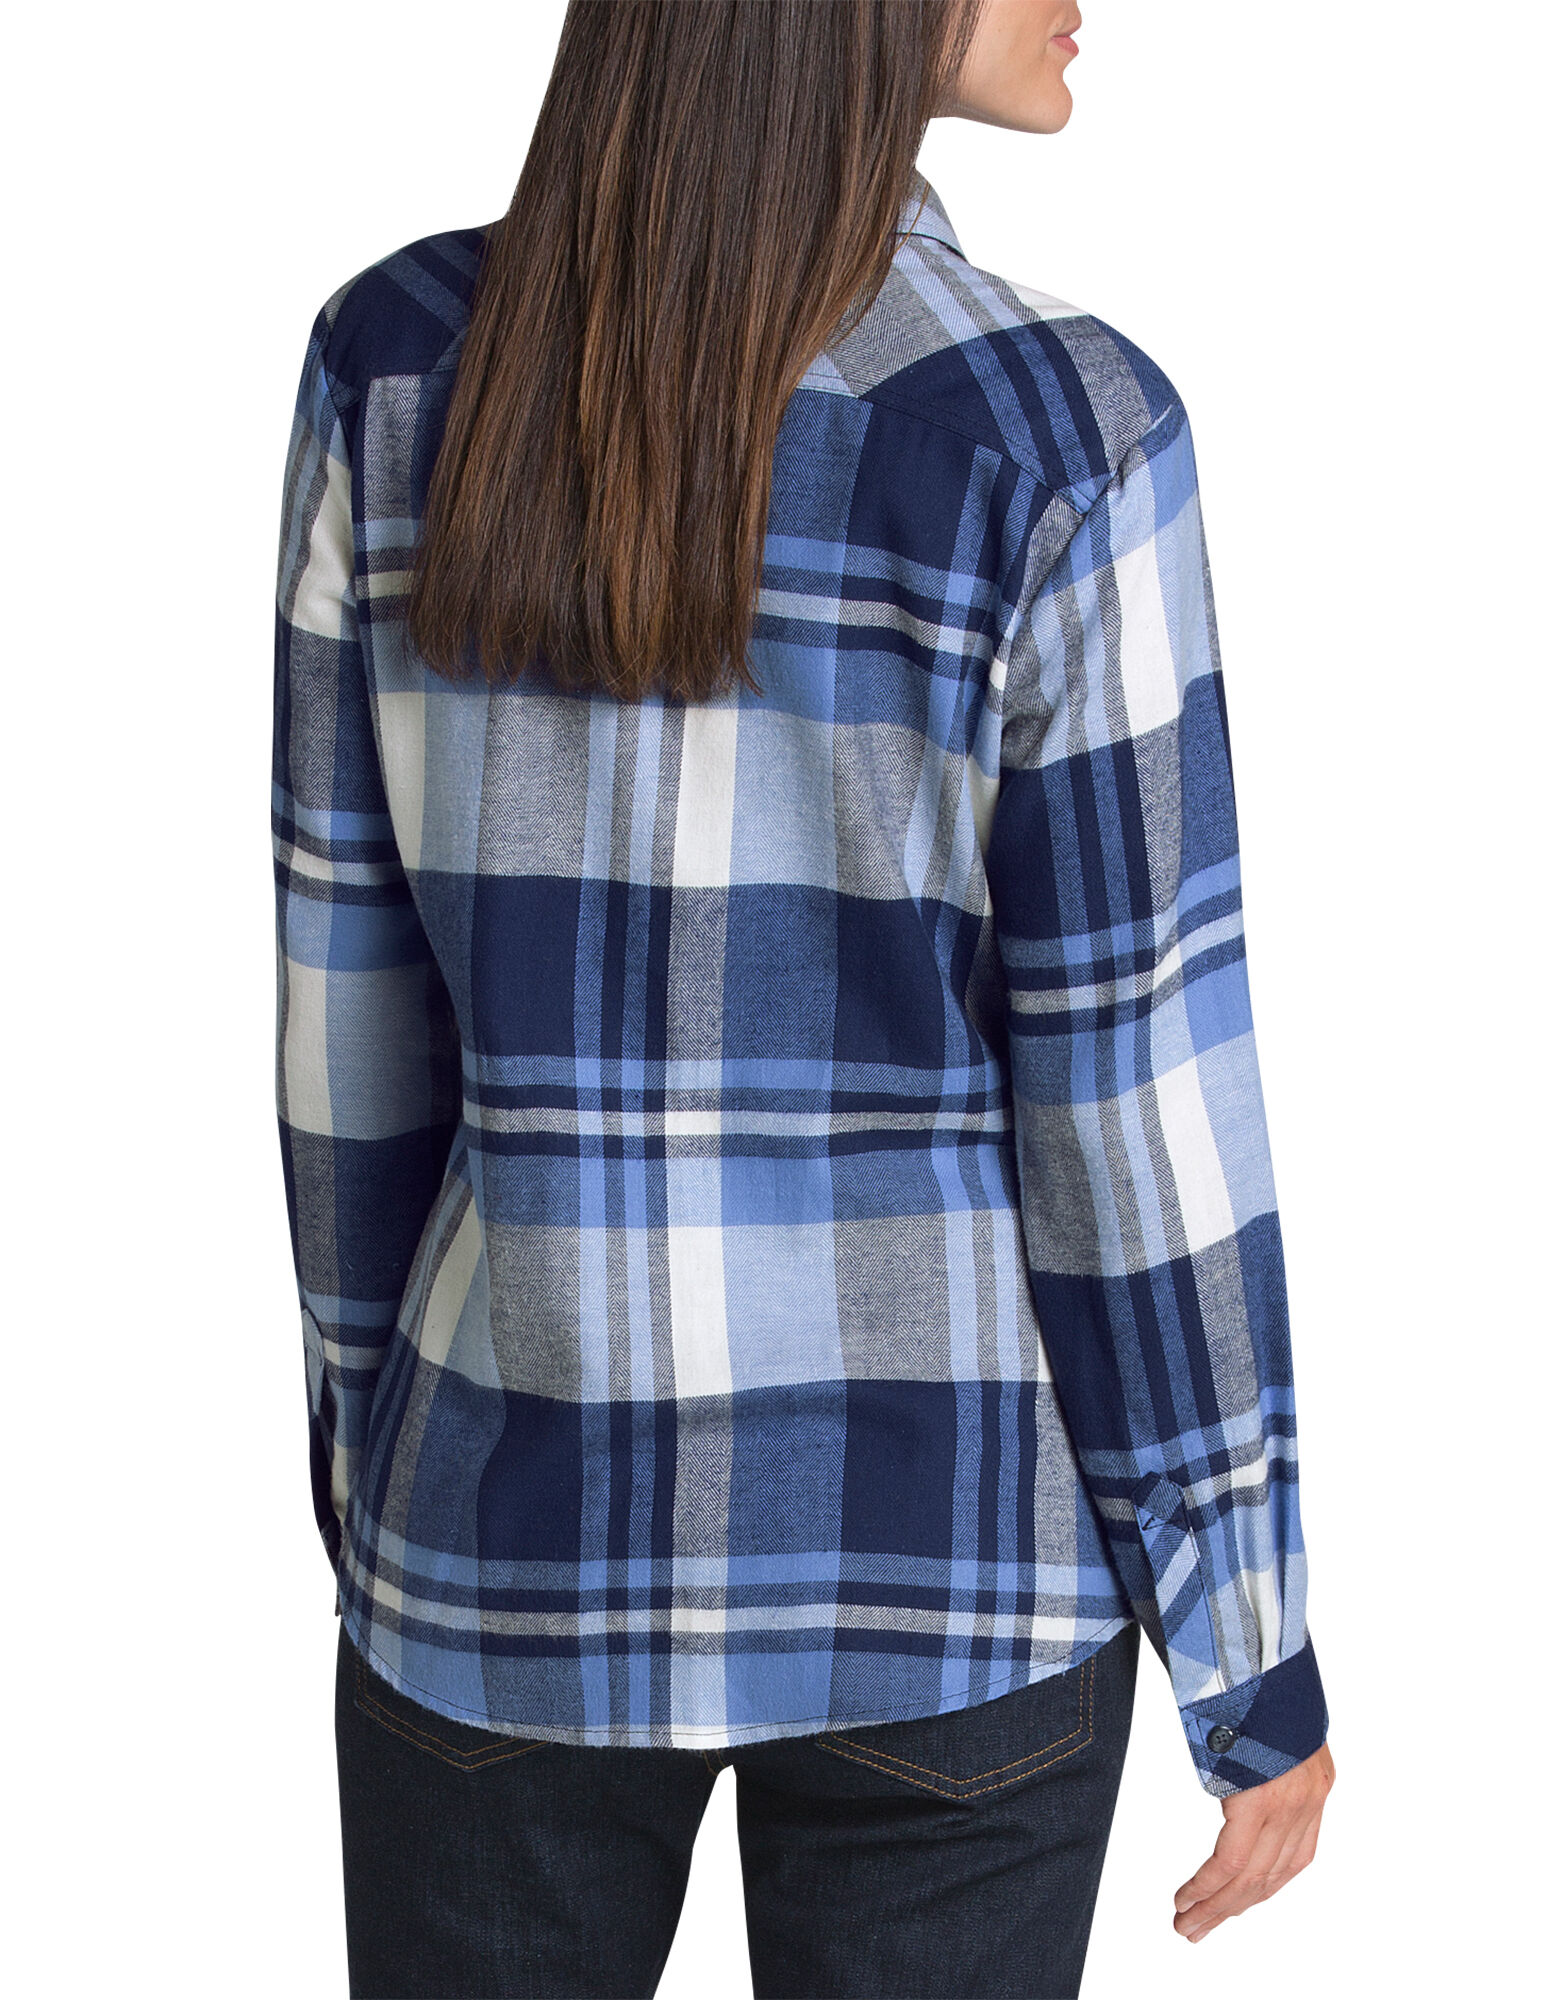 Women 39 S Long Sleeve Plaid Shirt Dickies Canada